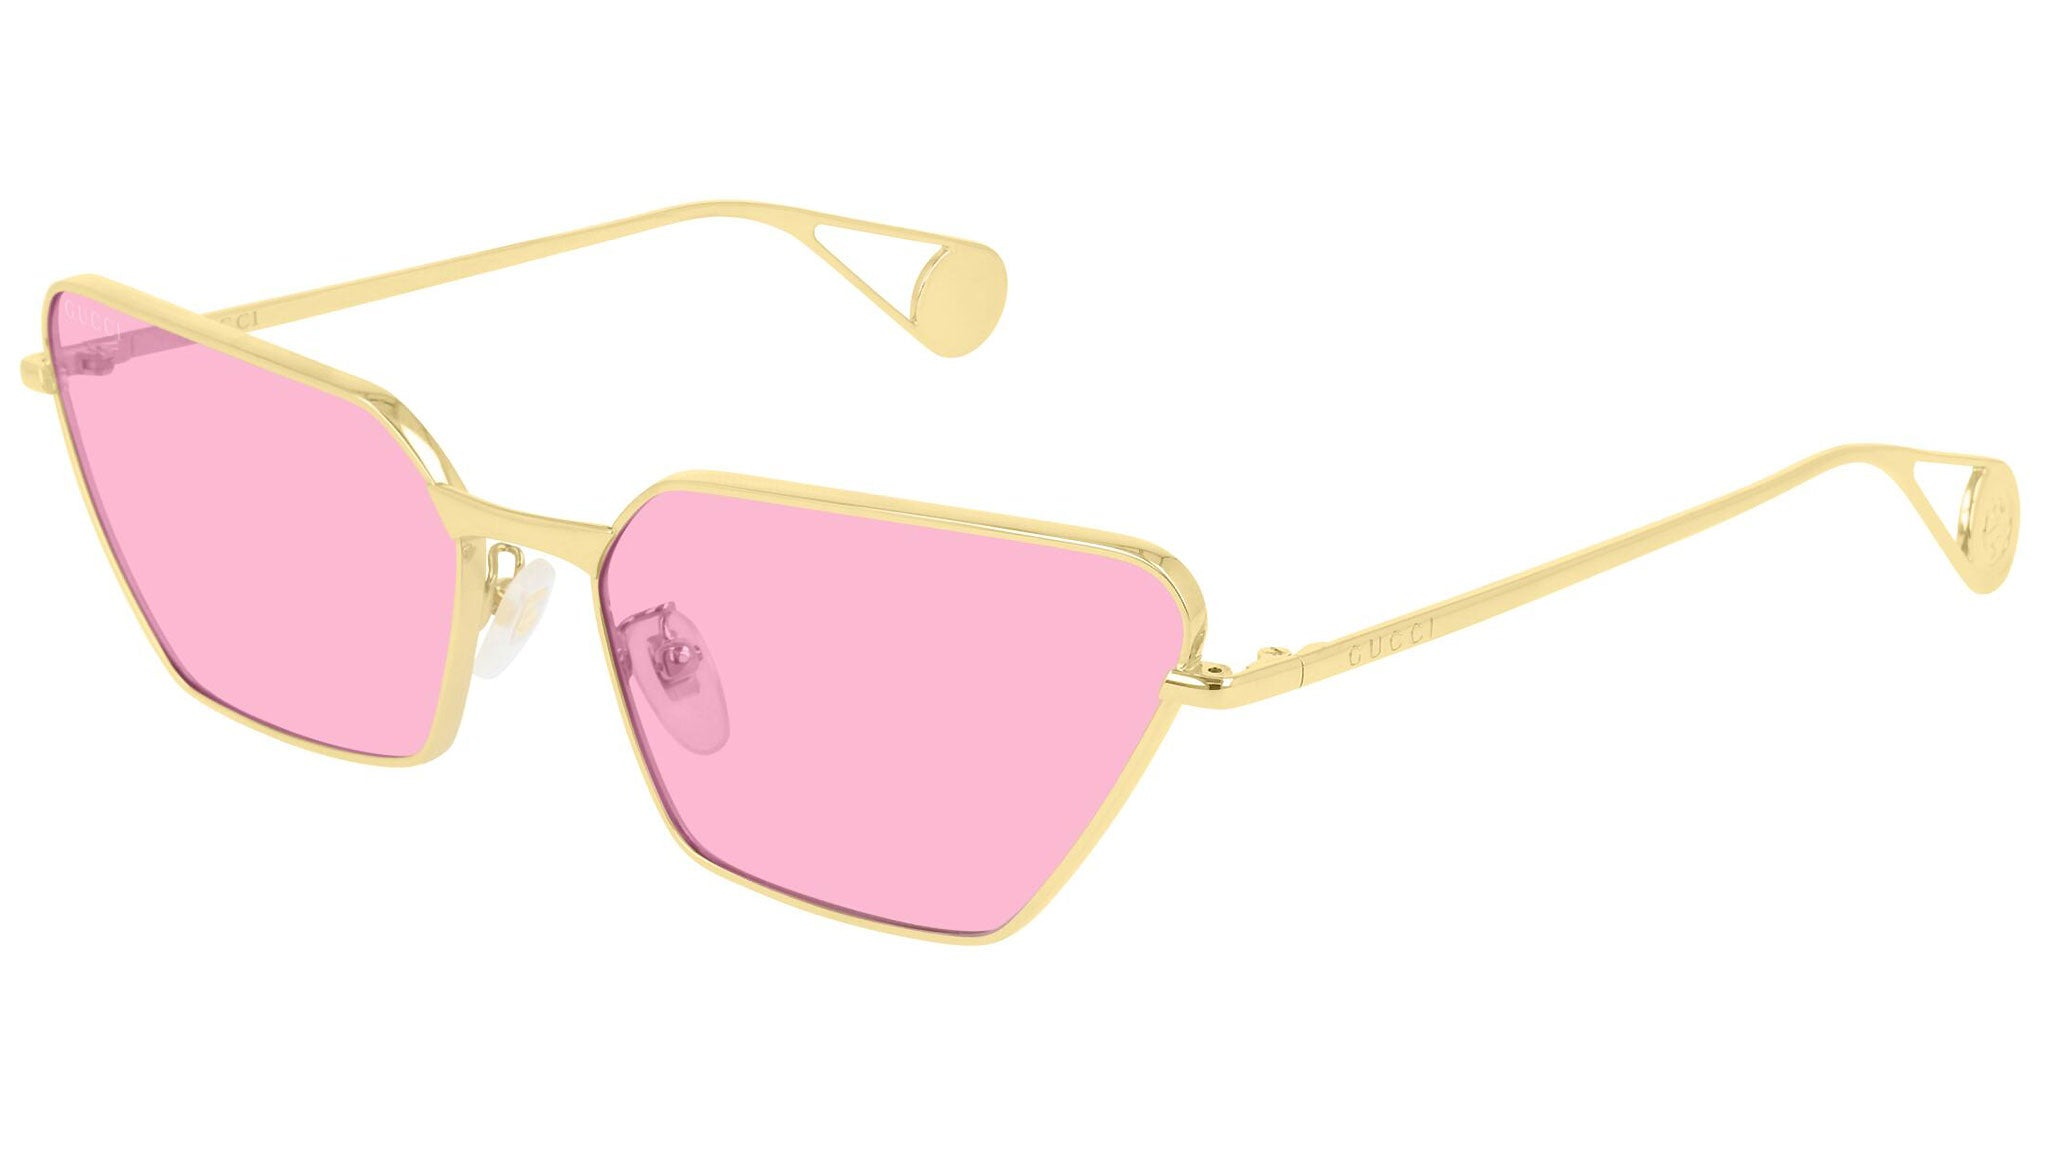 GG0538S shiny gold and pink